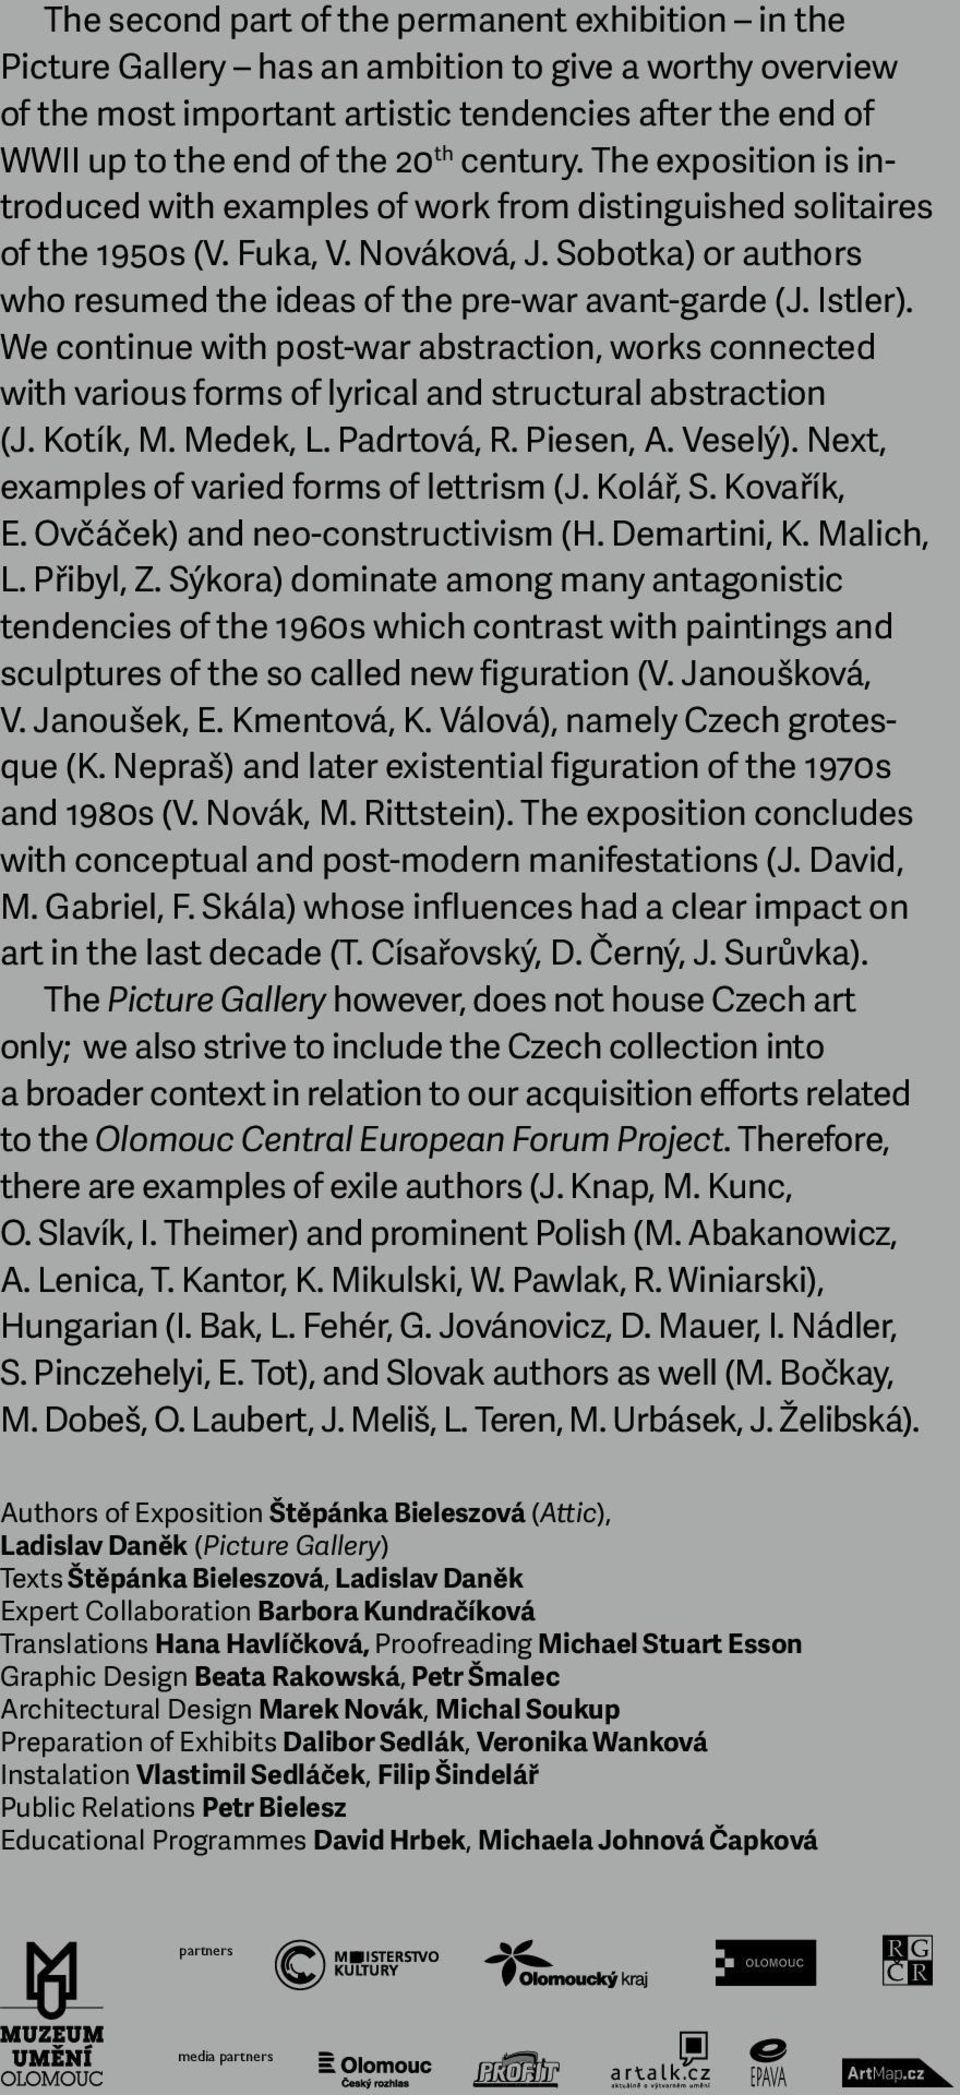 Sobotka) or authors who resumed the ideas of the pre-war avant-garde (J. Istler). We continue with post-war abstraction, works connected with various forms of lyrical and structural abstraction (J.